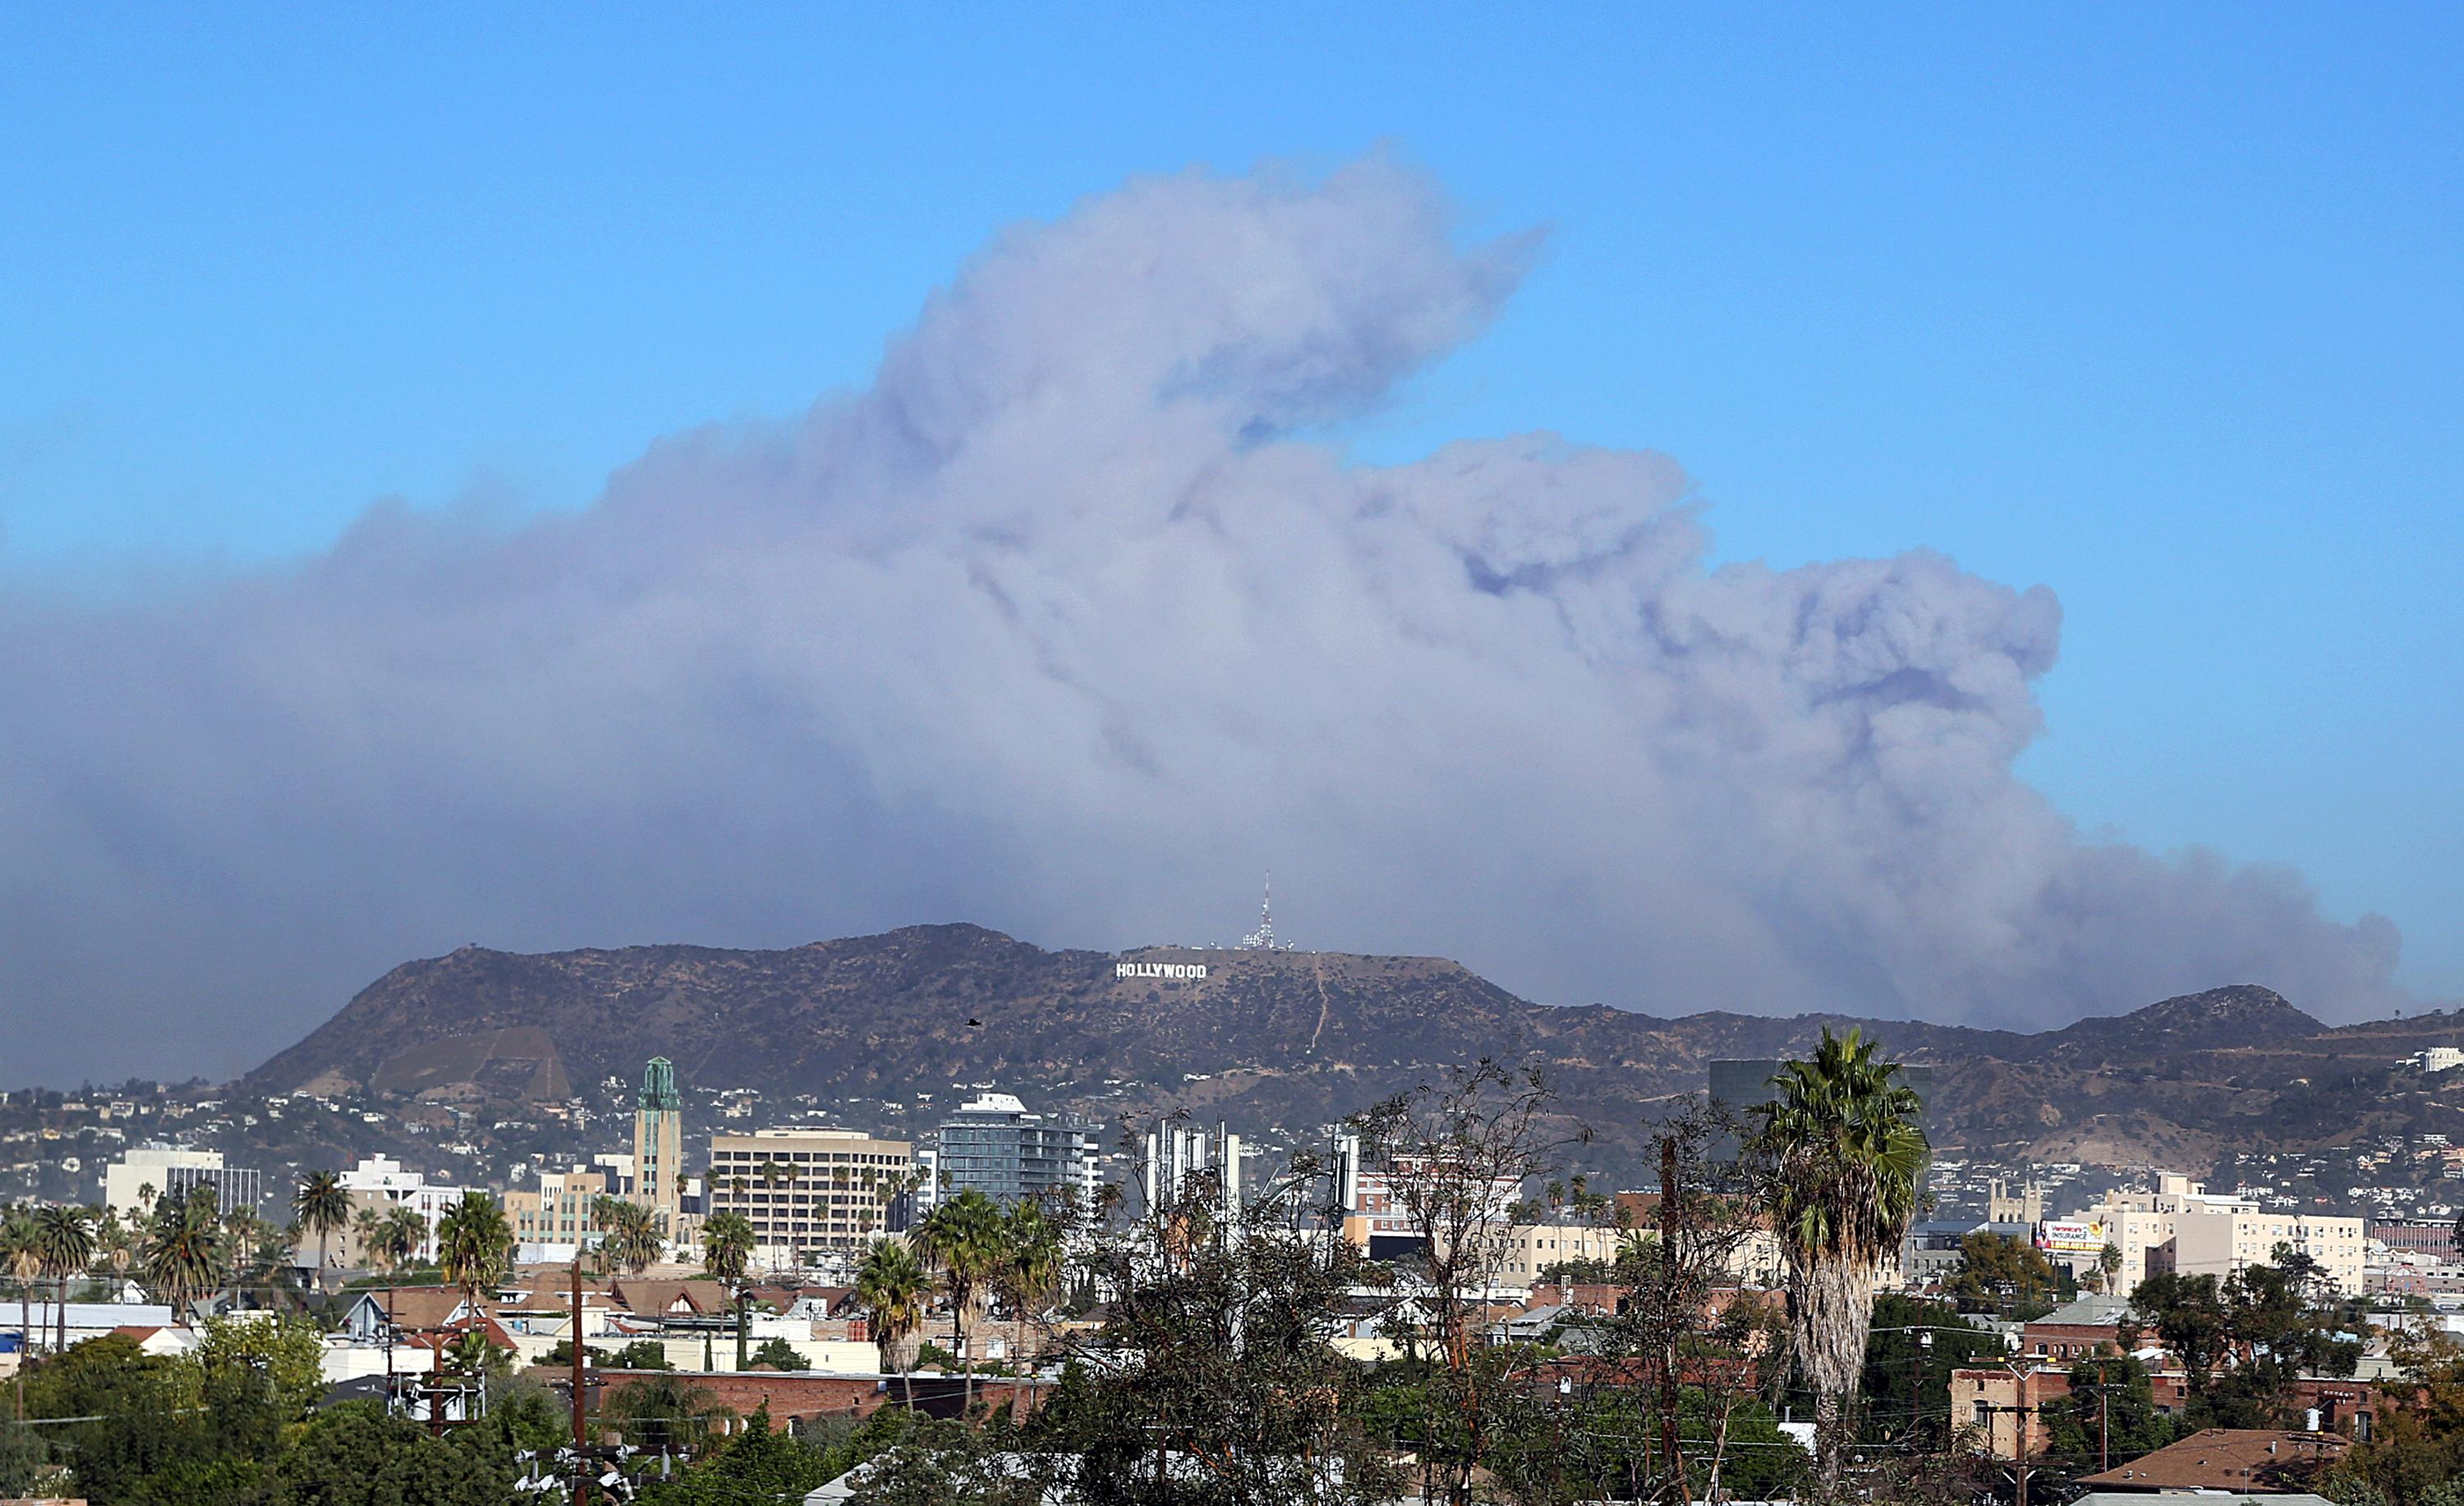 Smoke from the Creek wildfire in the San Gabriel Mountains, the second range behind the Hollywood Hills, home of the Hollywood sign, looms up over Los Angeles Tuesday morning, Dec. 5, 2017 (AP Photo/Reed Saxon)